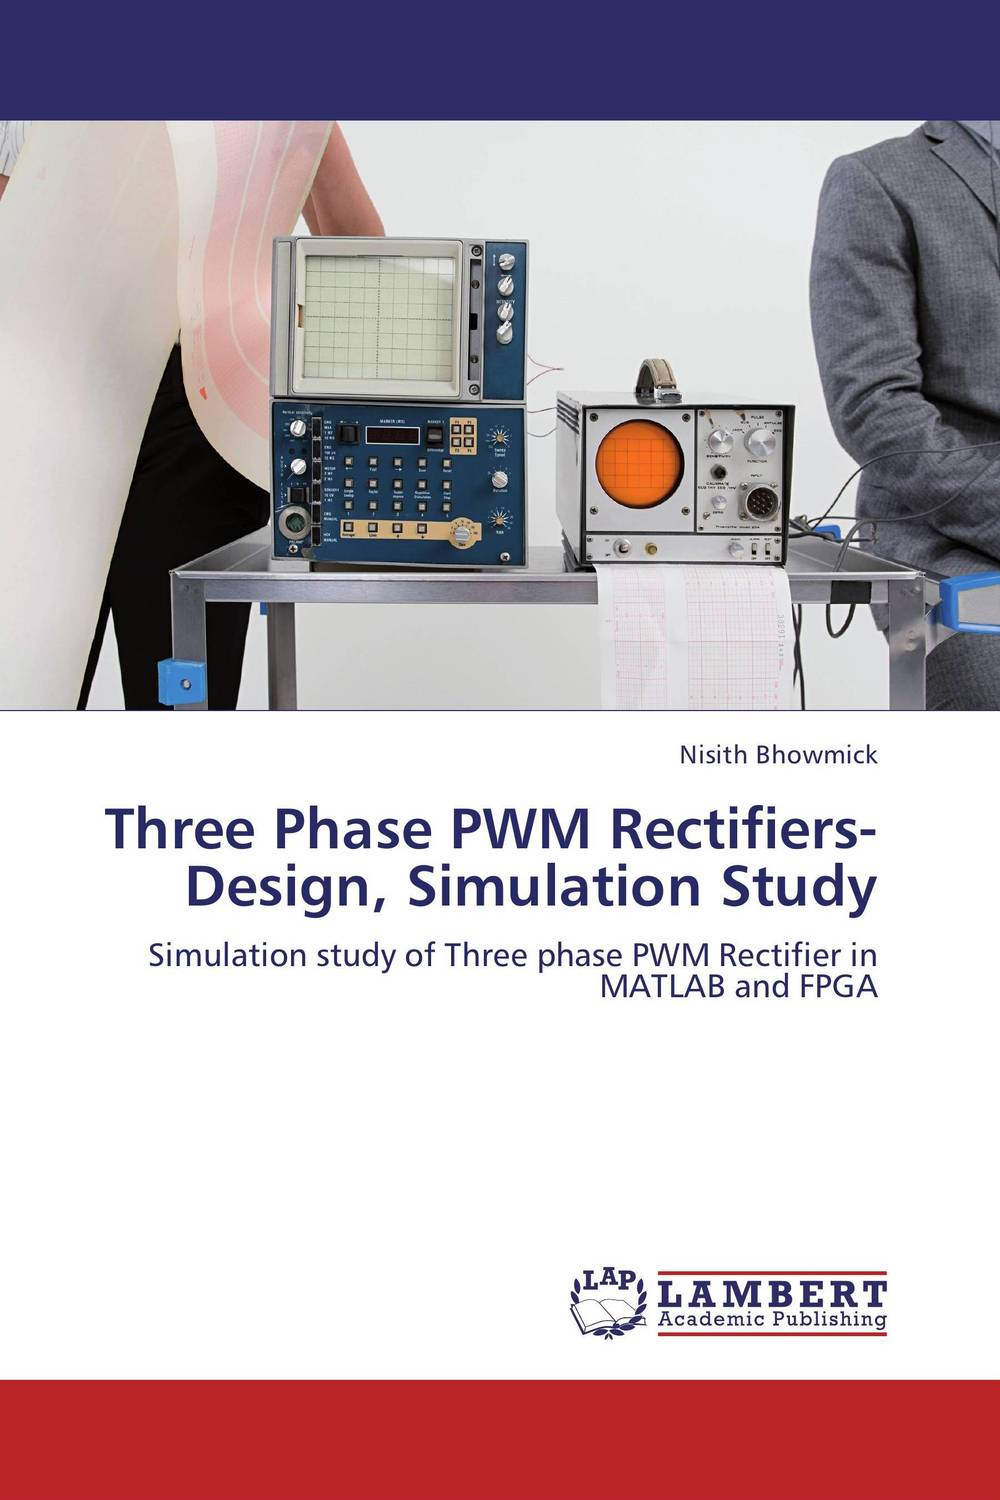 Three Phase PWM Rectifiers-Design, Simulation Study